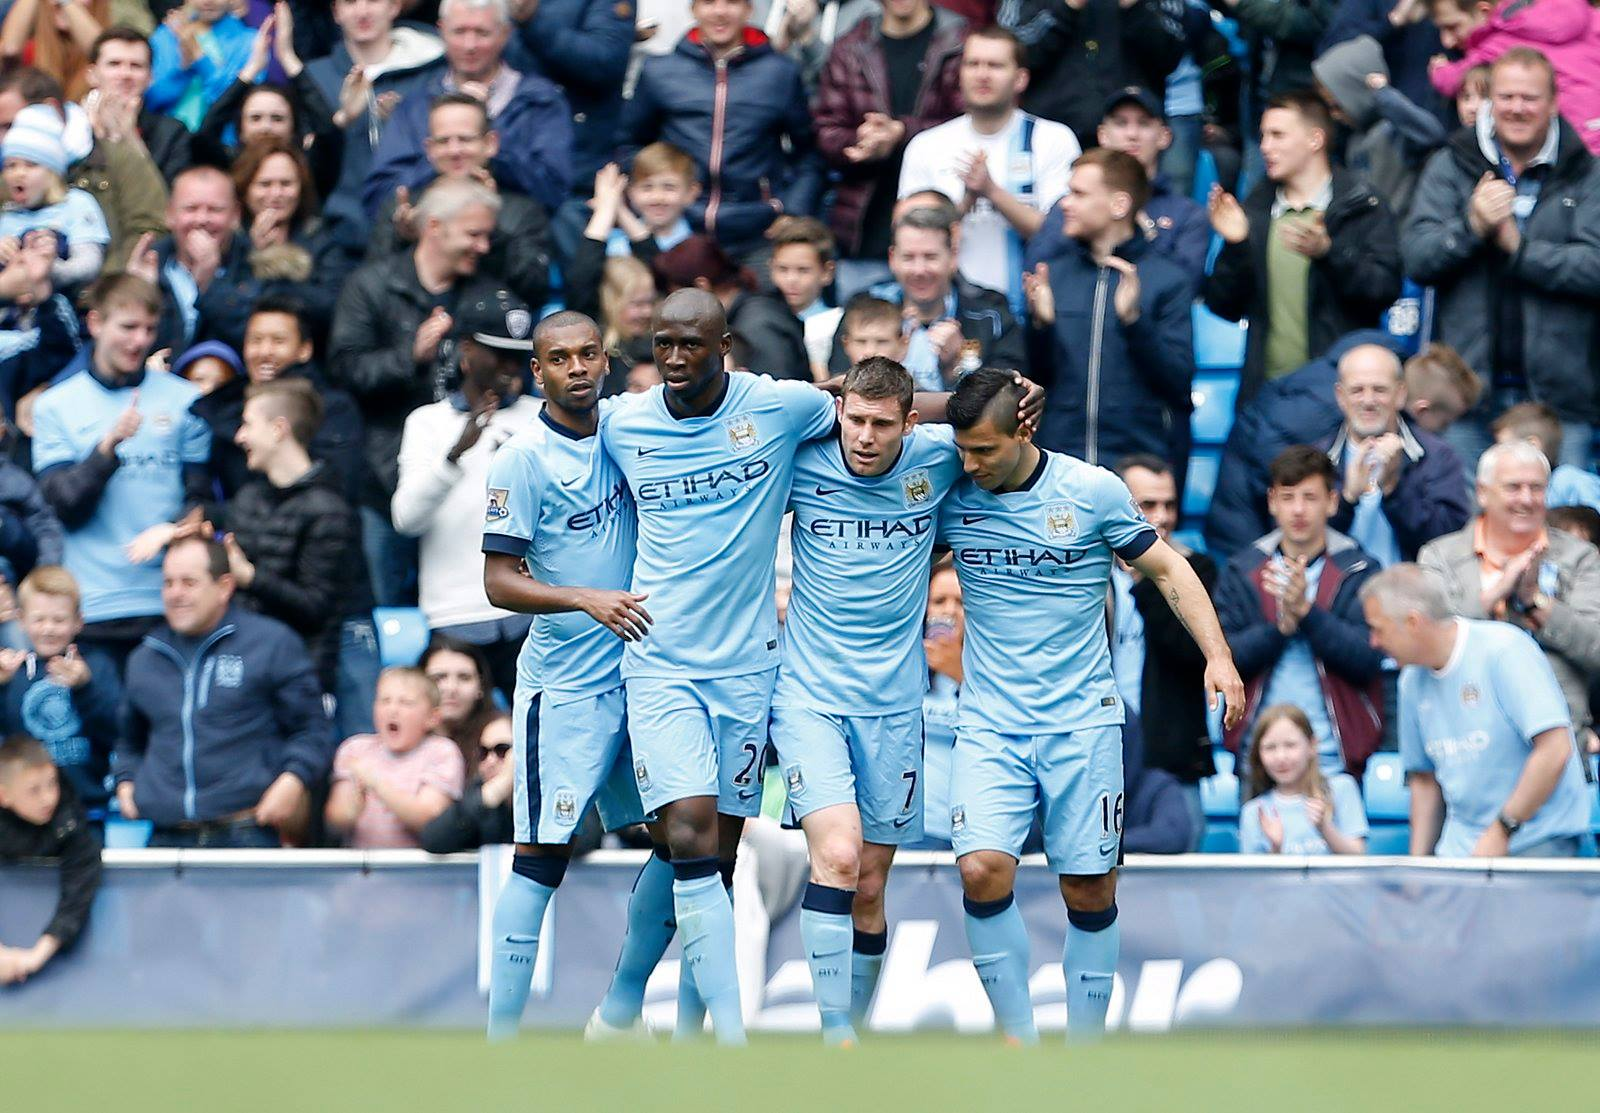 Four score - City players celebrate after taking maximum points from their last four games. Courtesy@MCFC